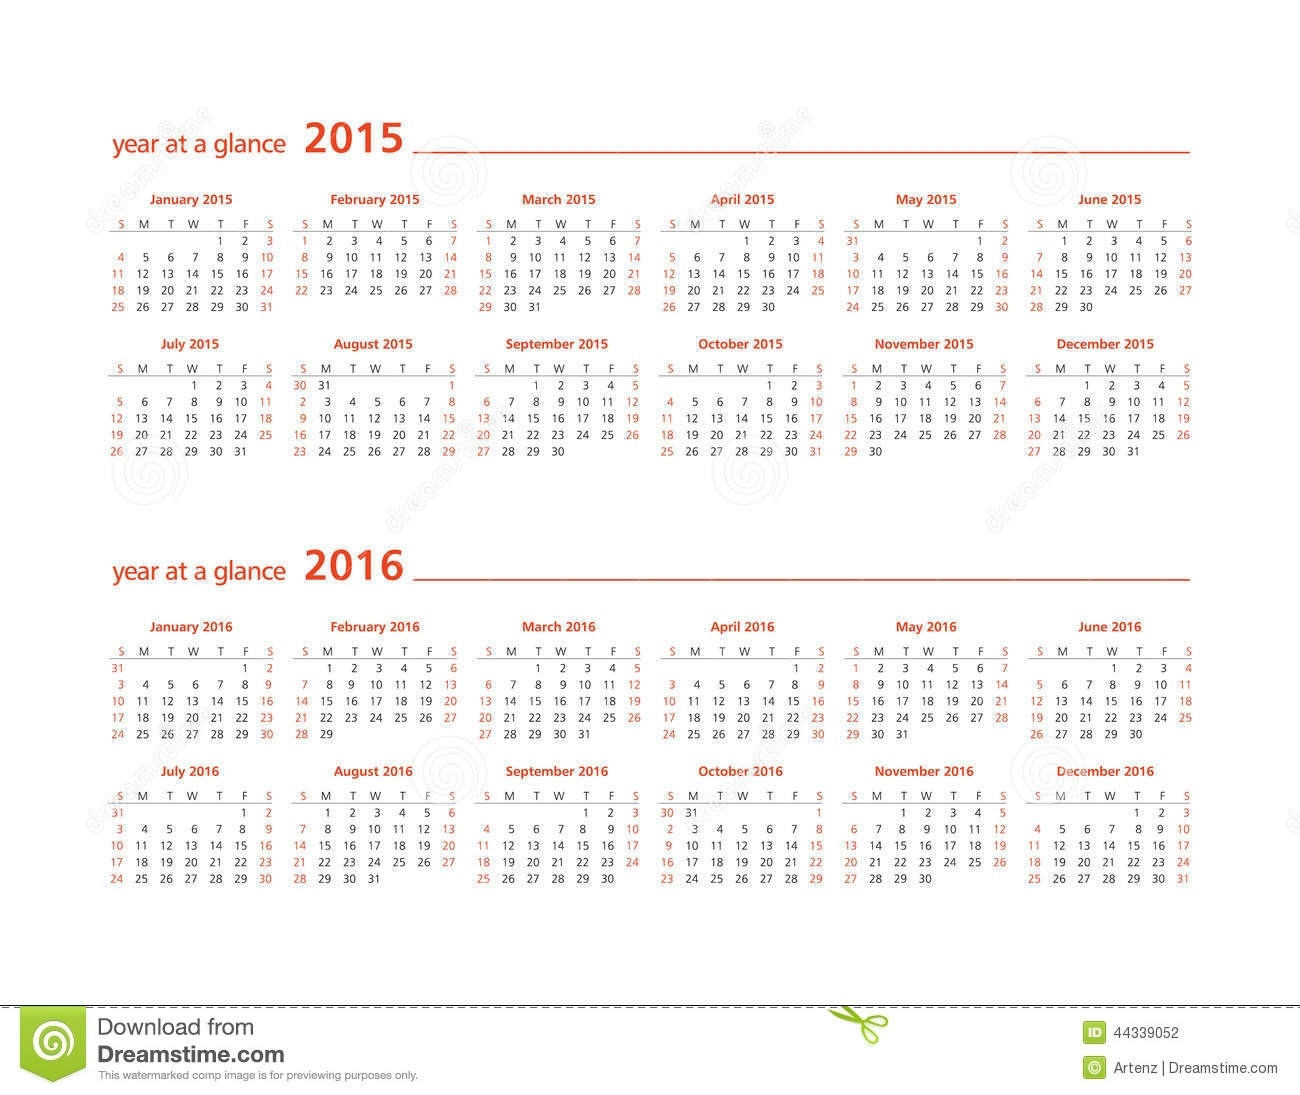 2015 And 2016 Year At A Glance Stock Illustration - Illustration Of  Year Calendar At A Glance